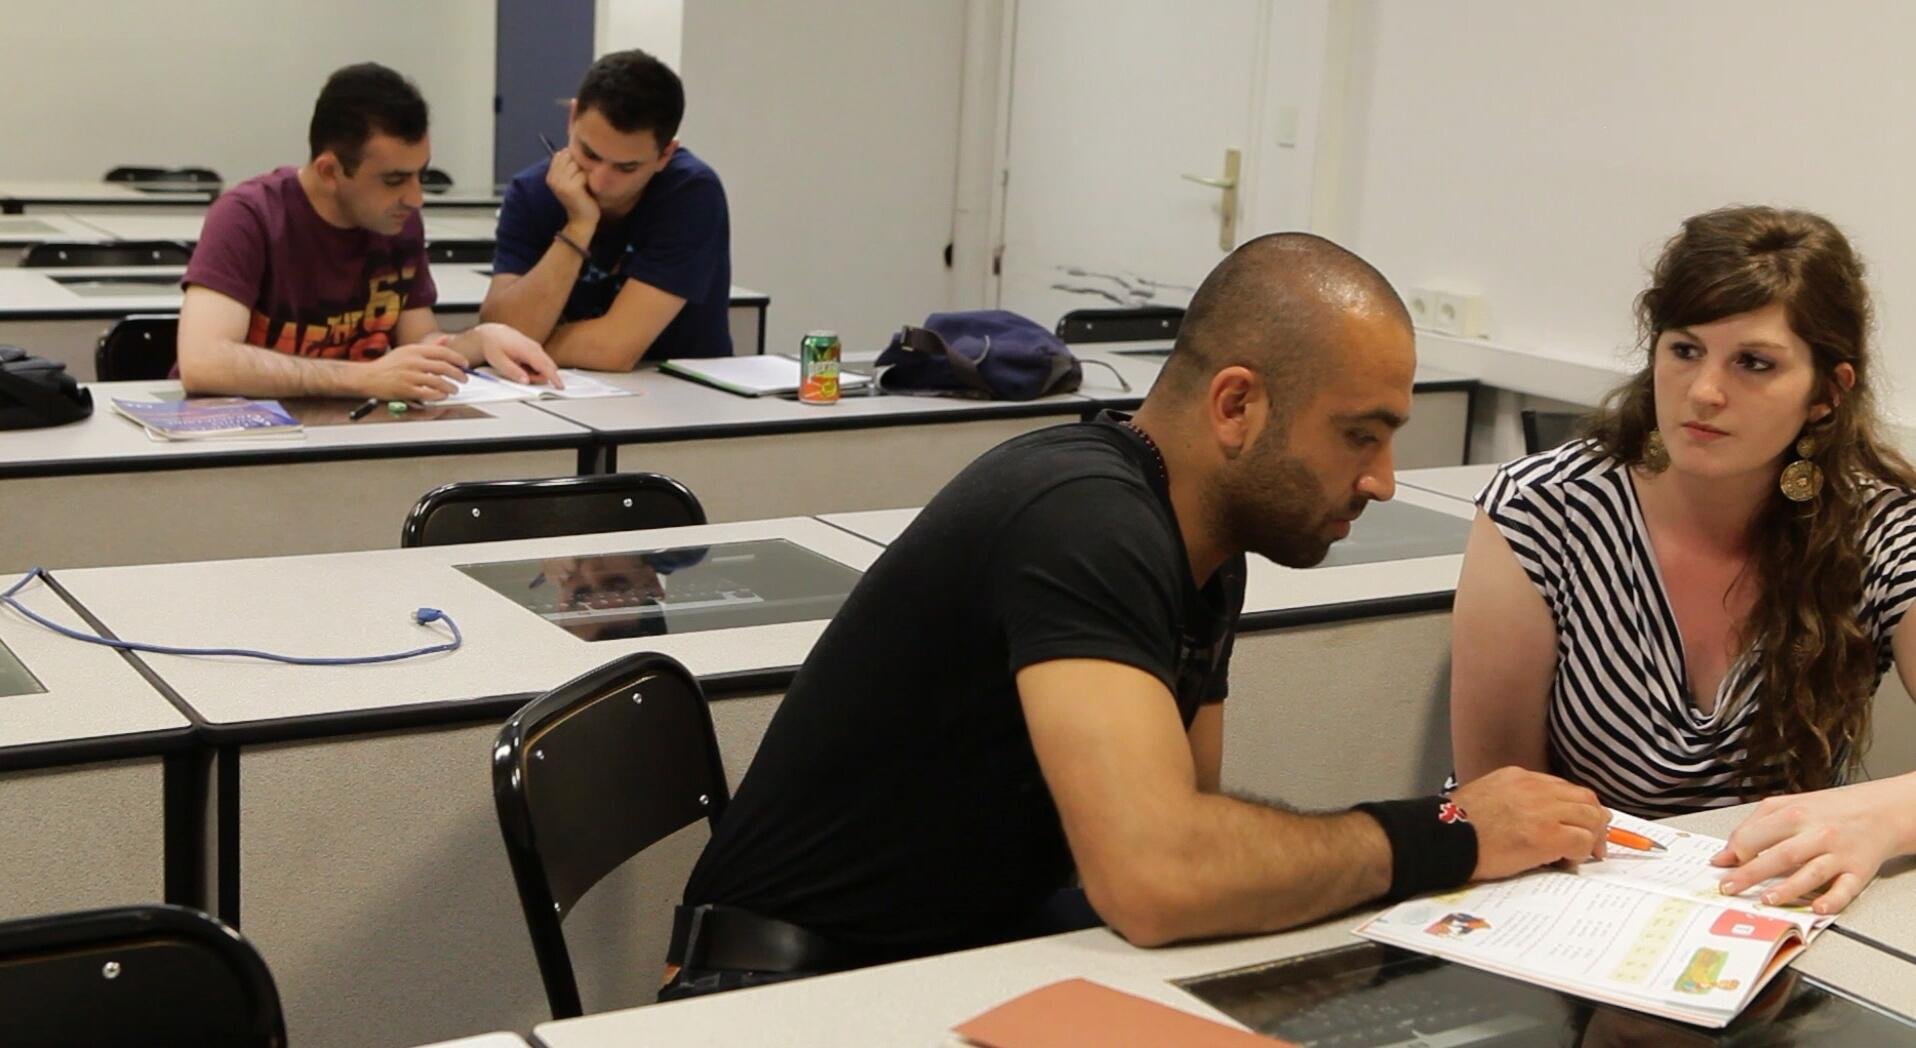 Migrants join educational programs to help them reach their goals in France